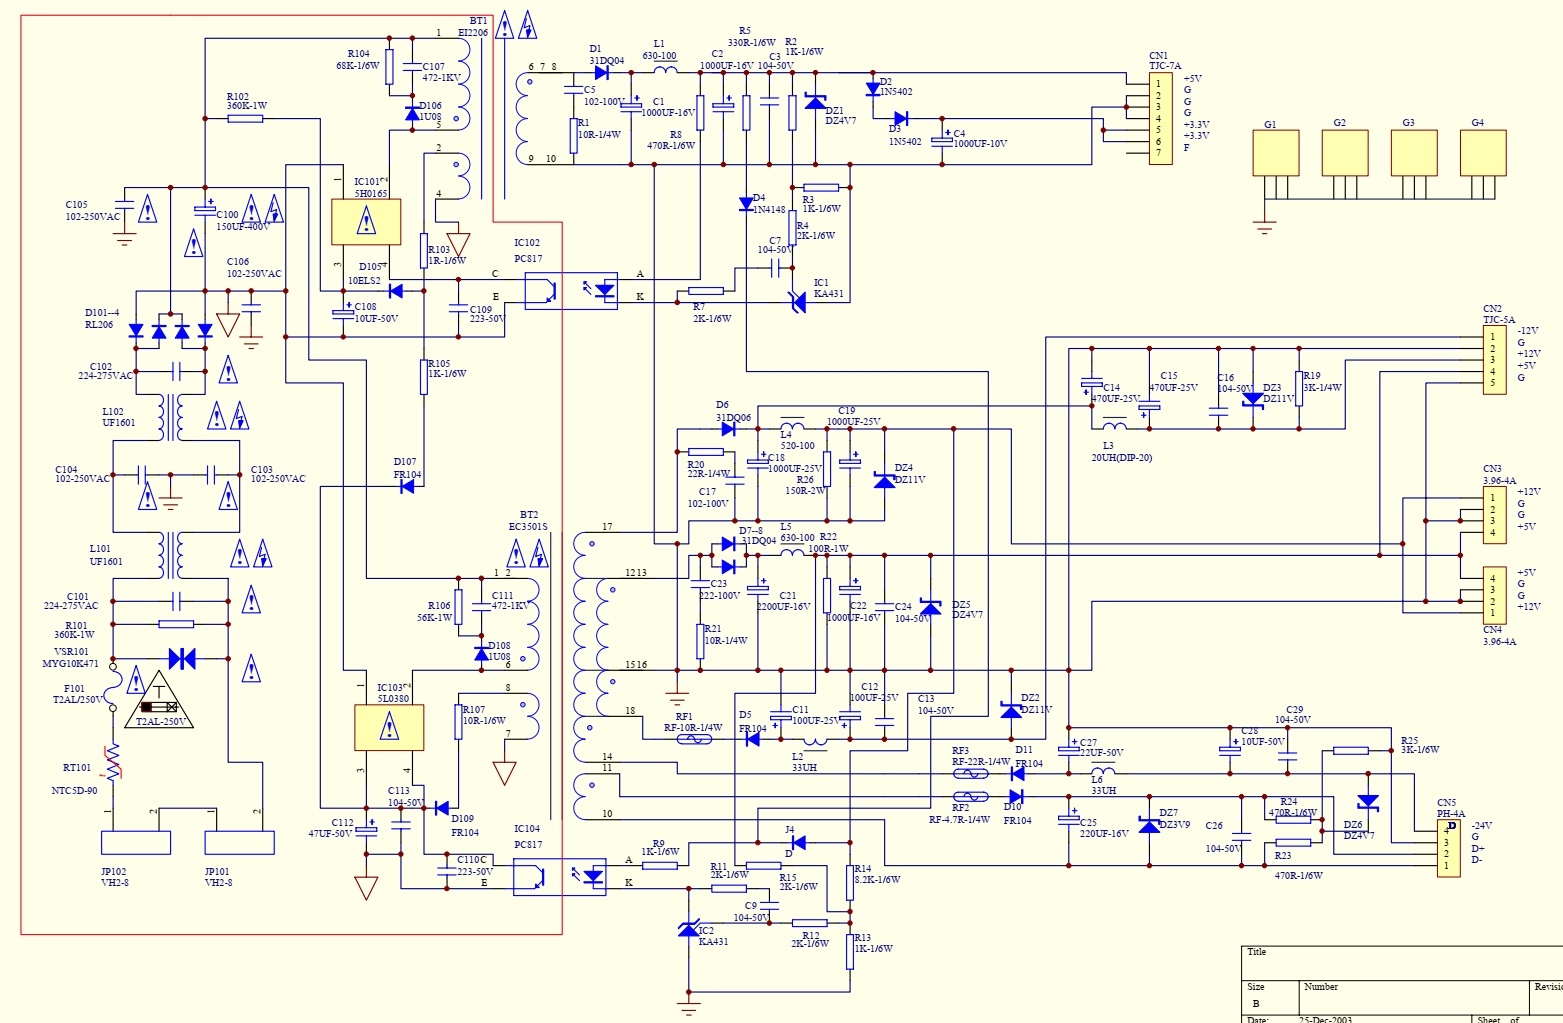 small resolution of belson lcd tv powell i es6128 es7010 circuit diagram schematic full